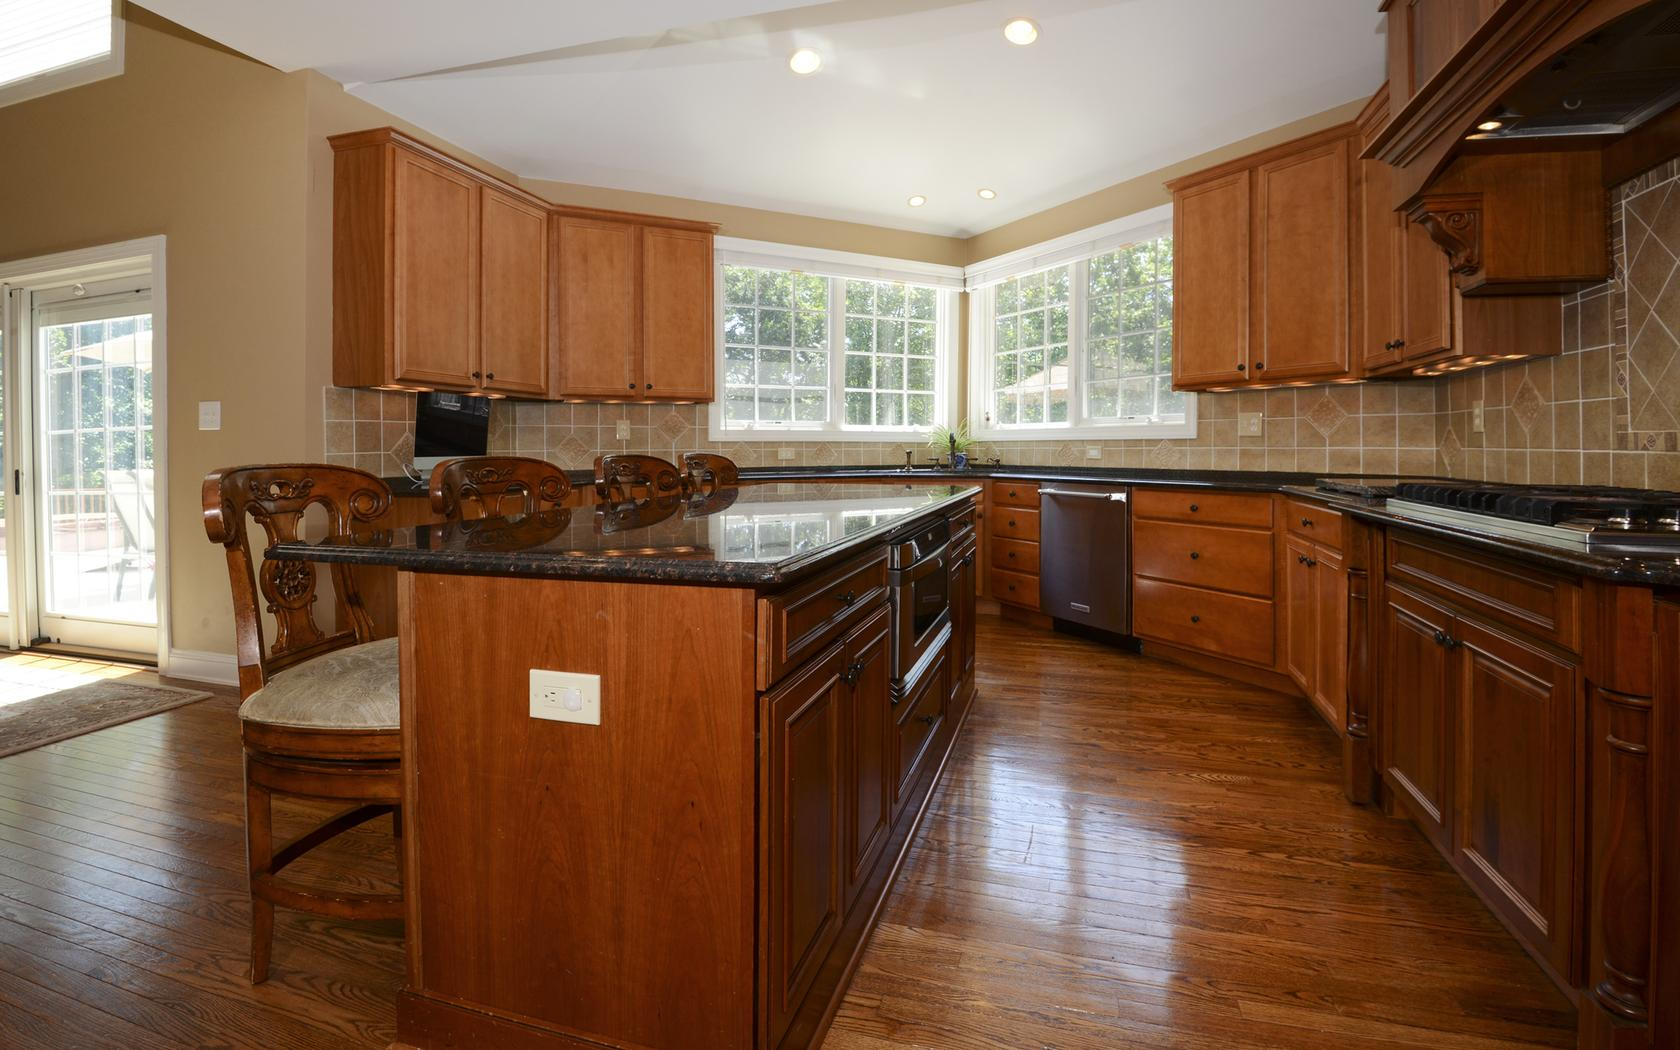 Kitchen cabinets long valley nj - Gourmet Kitchen